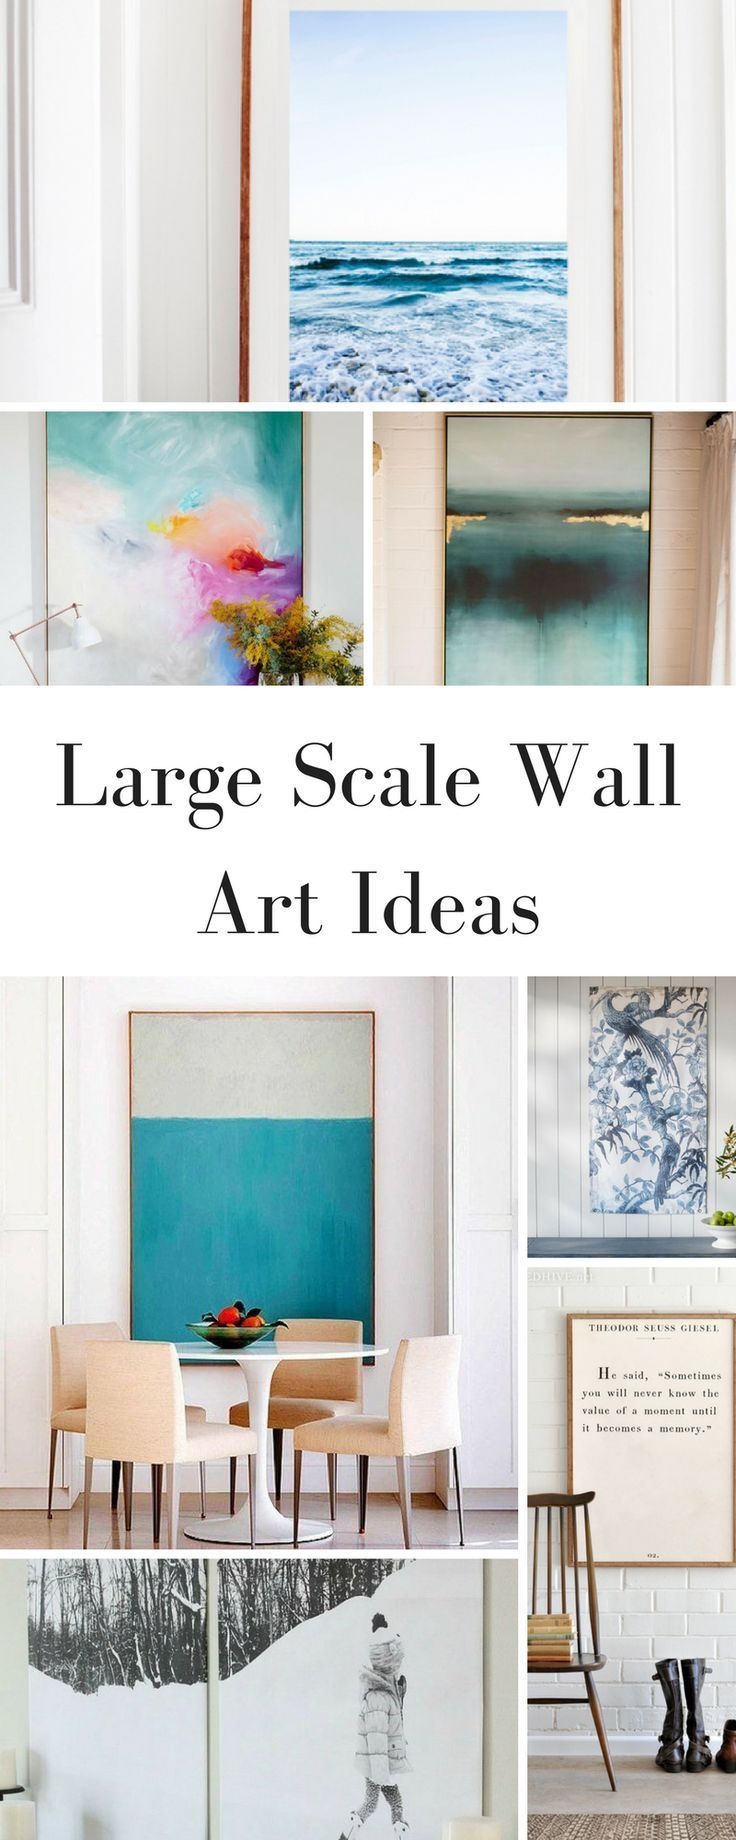 5 Large Wall Art Ideas For Your Empty Walls Diy Large Wall Art Large Scale Wall Art Dining Room Wall Art